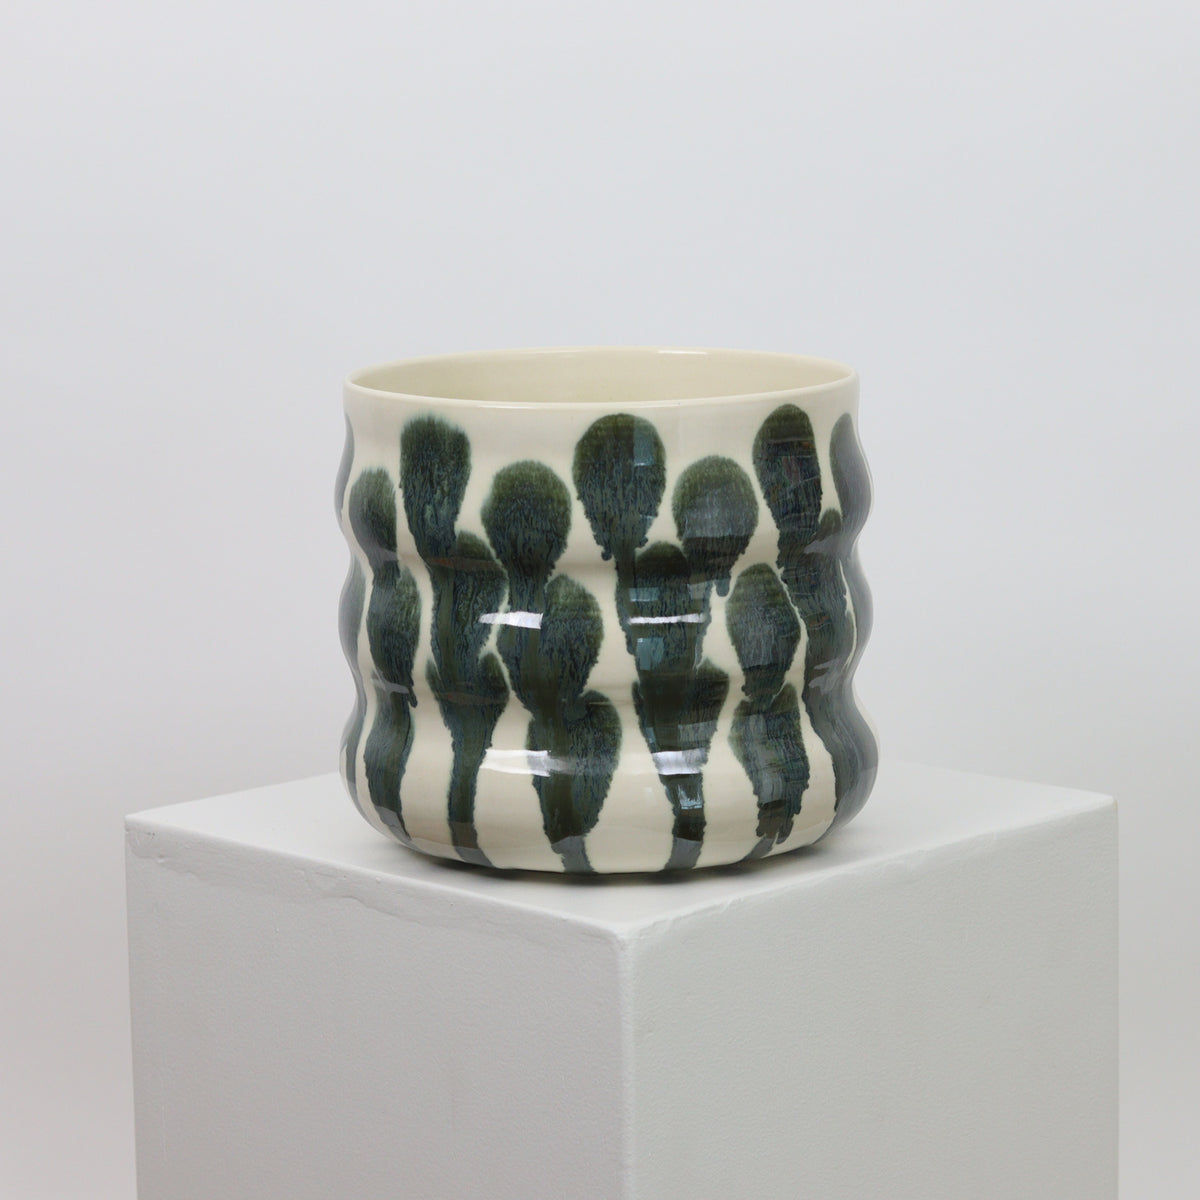 21093 - White with Metallic Accents - Squiggle Planter